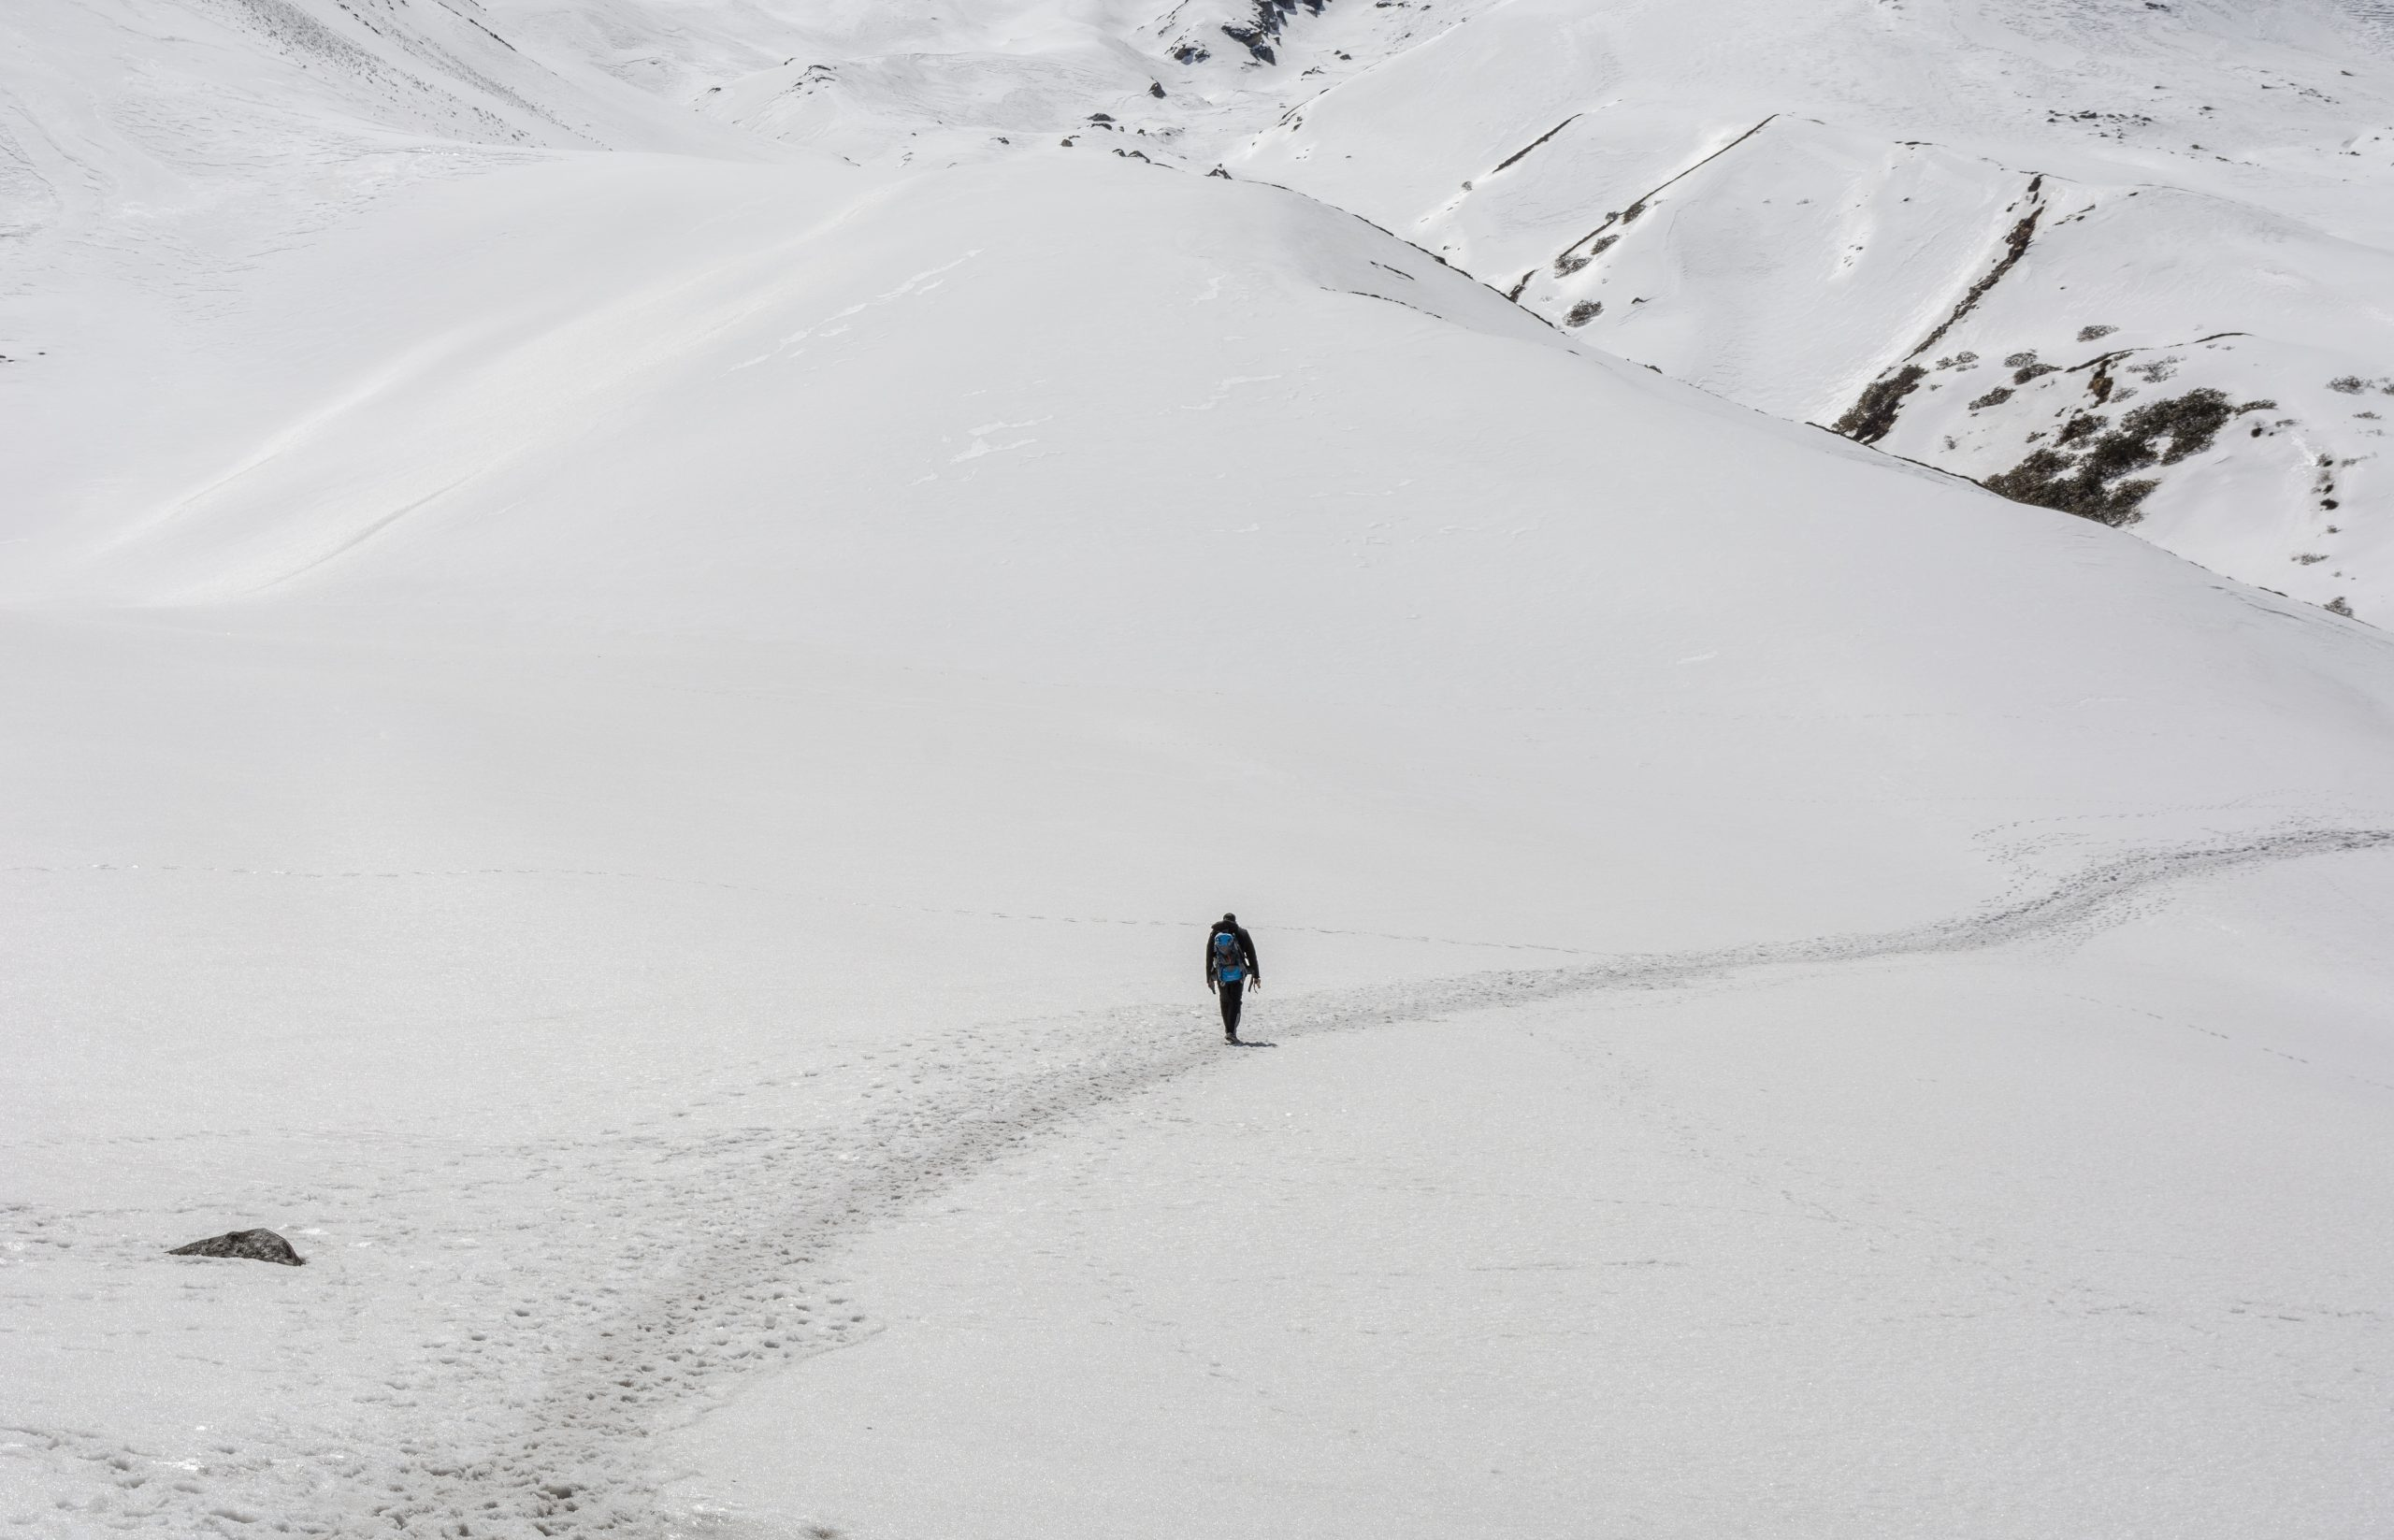 a person traveling alone in a snowy area